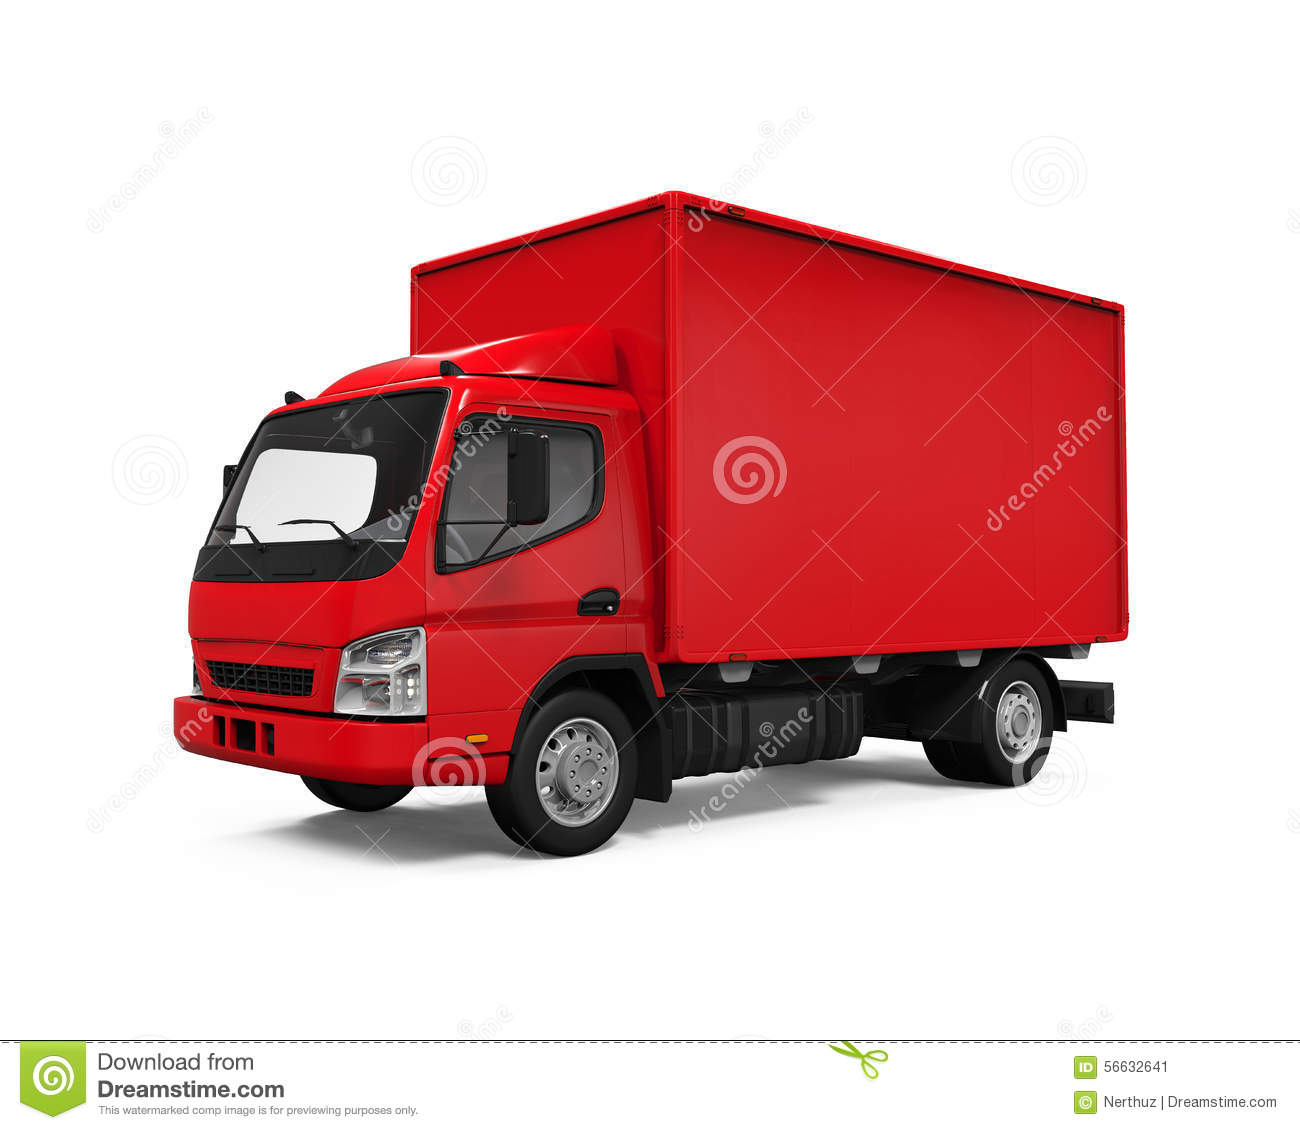 Red Delivery Van Stock Illustration - Image: 56632641